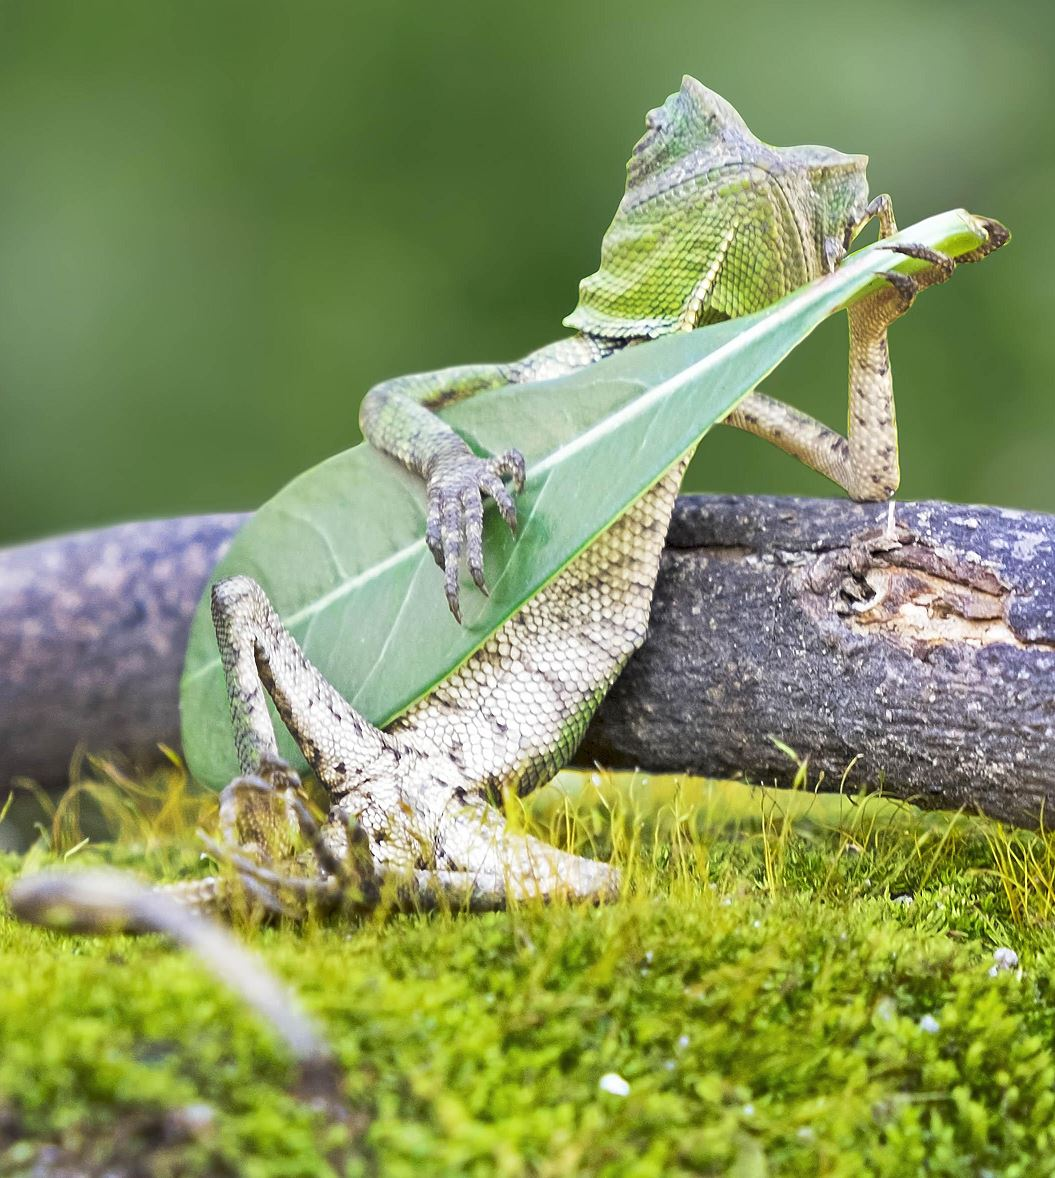 This leaf-strumming lizard thinks it's Jimi Hendrix